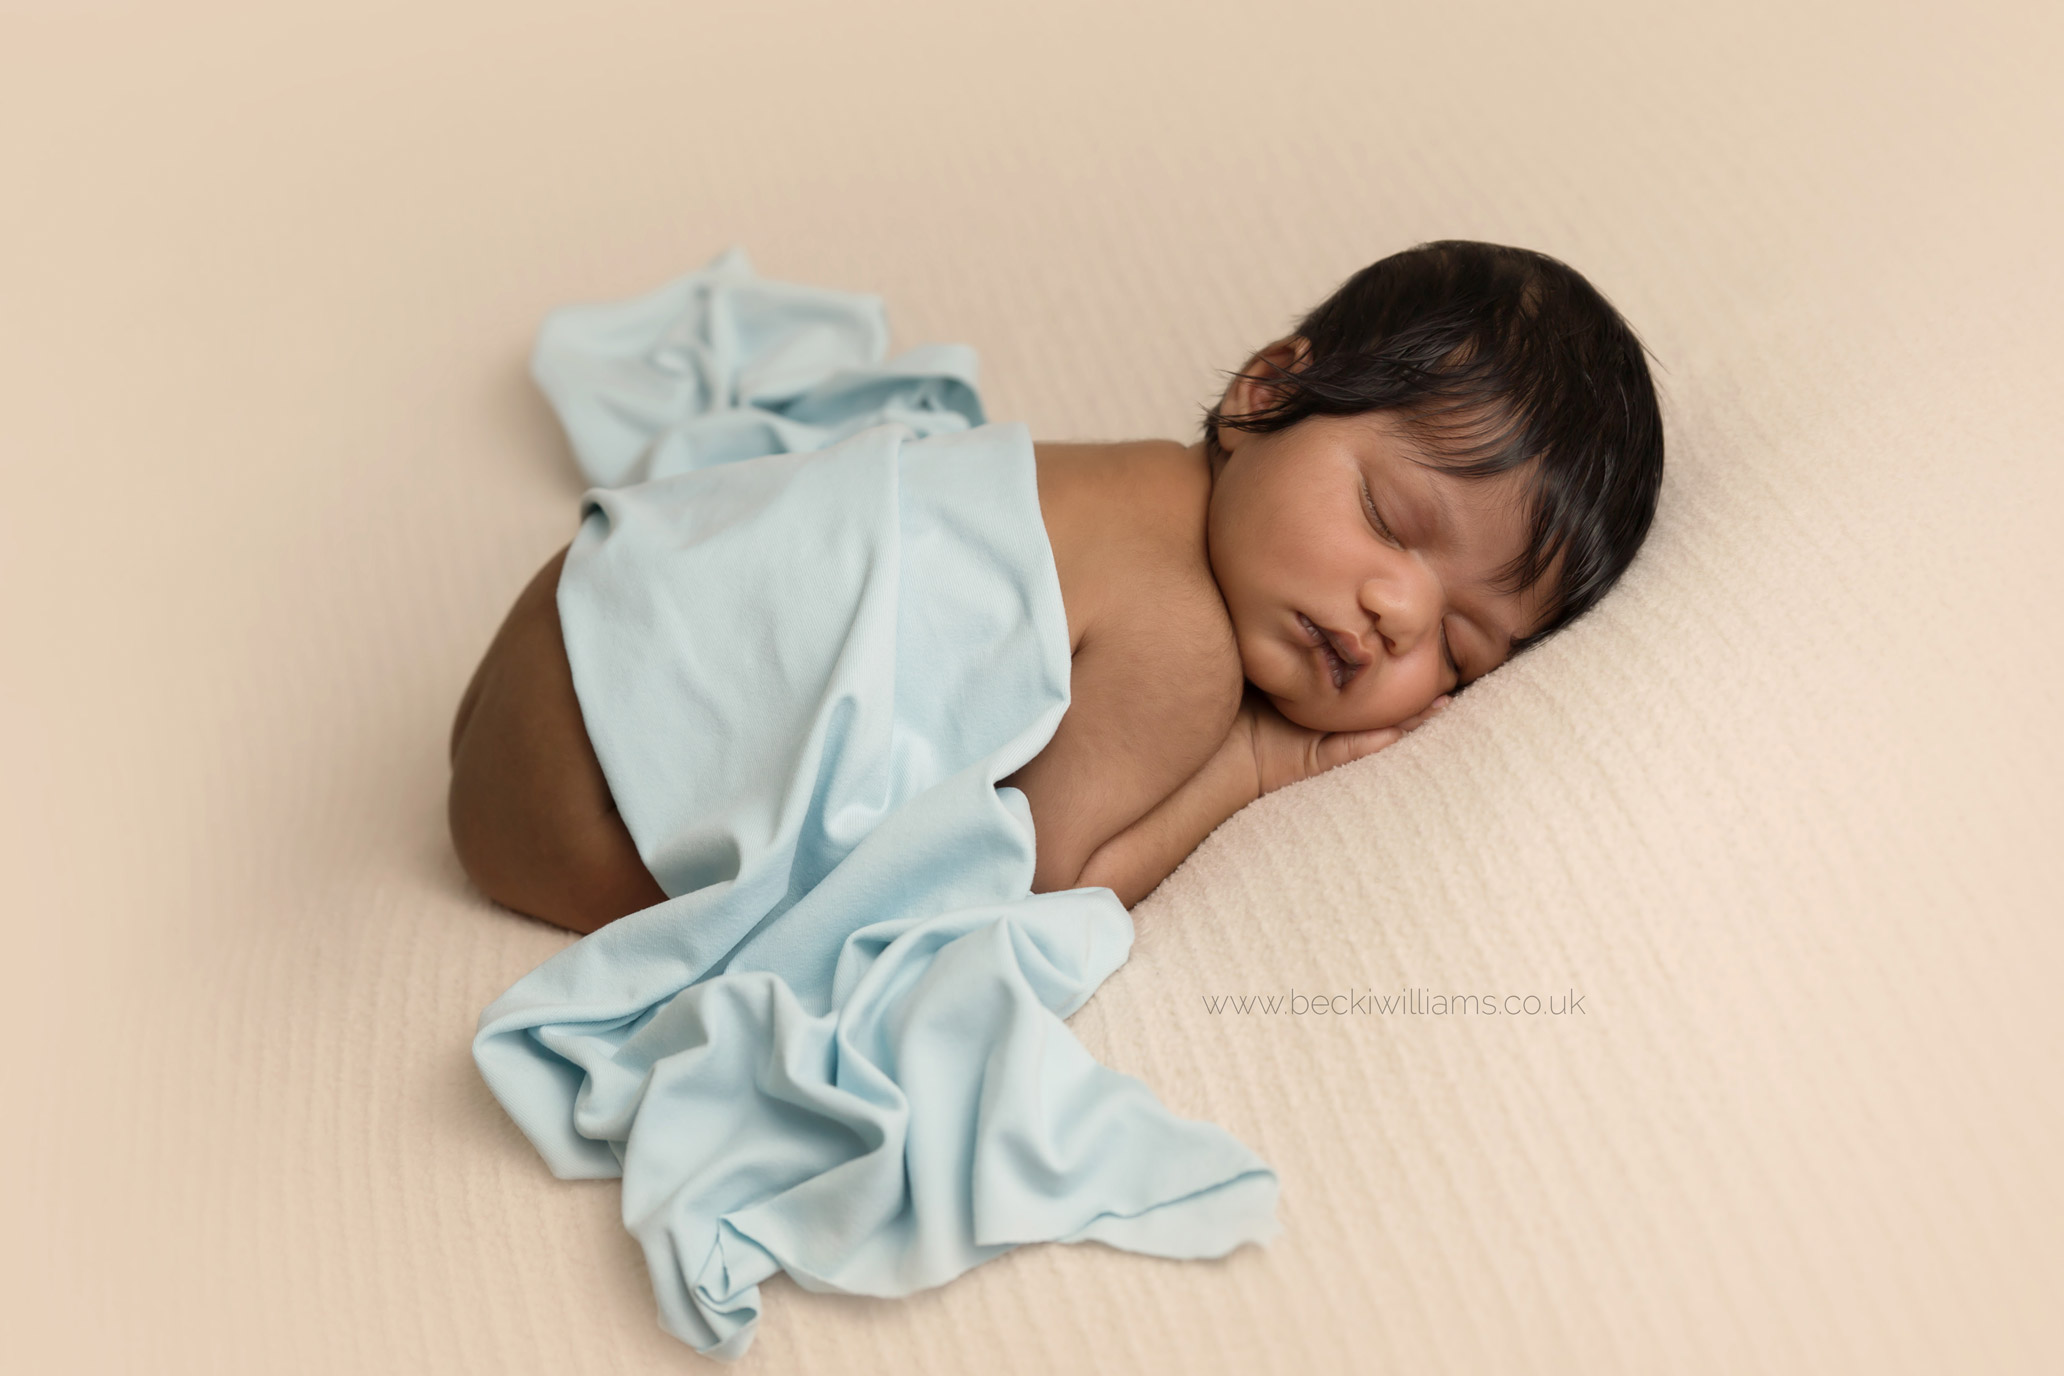 newborn baby girl laying on her tummy for her newborn photo shoot in hemel hempstead with a blue blanket